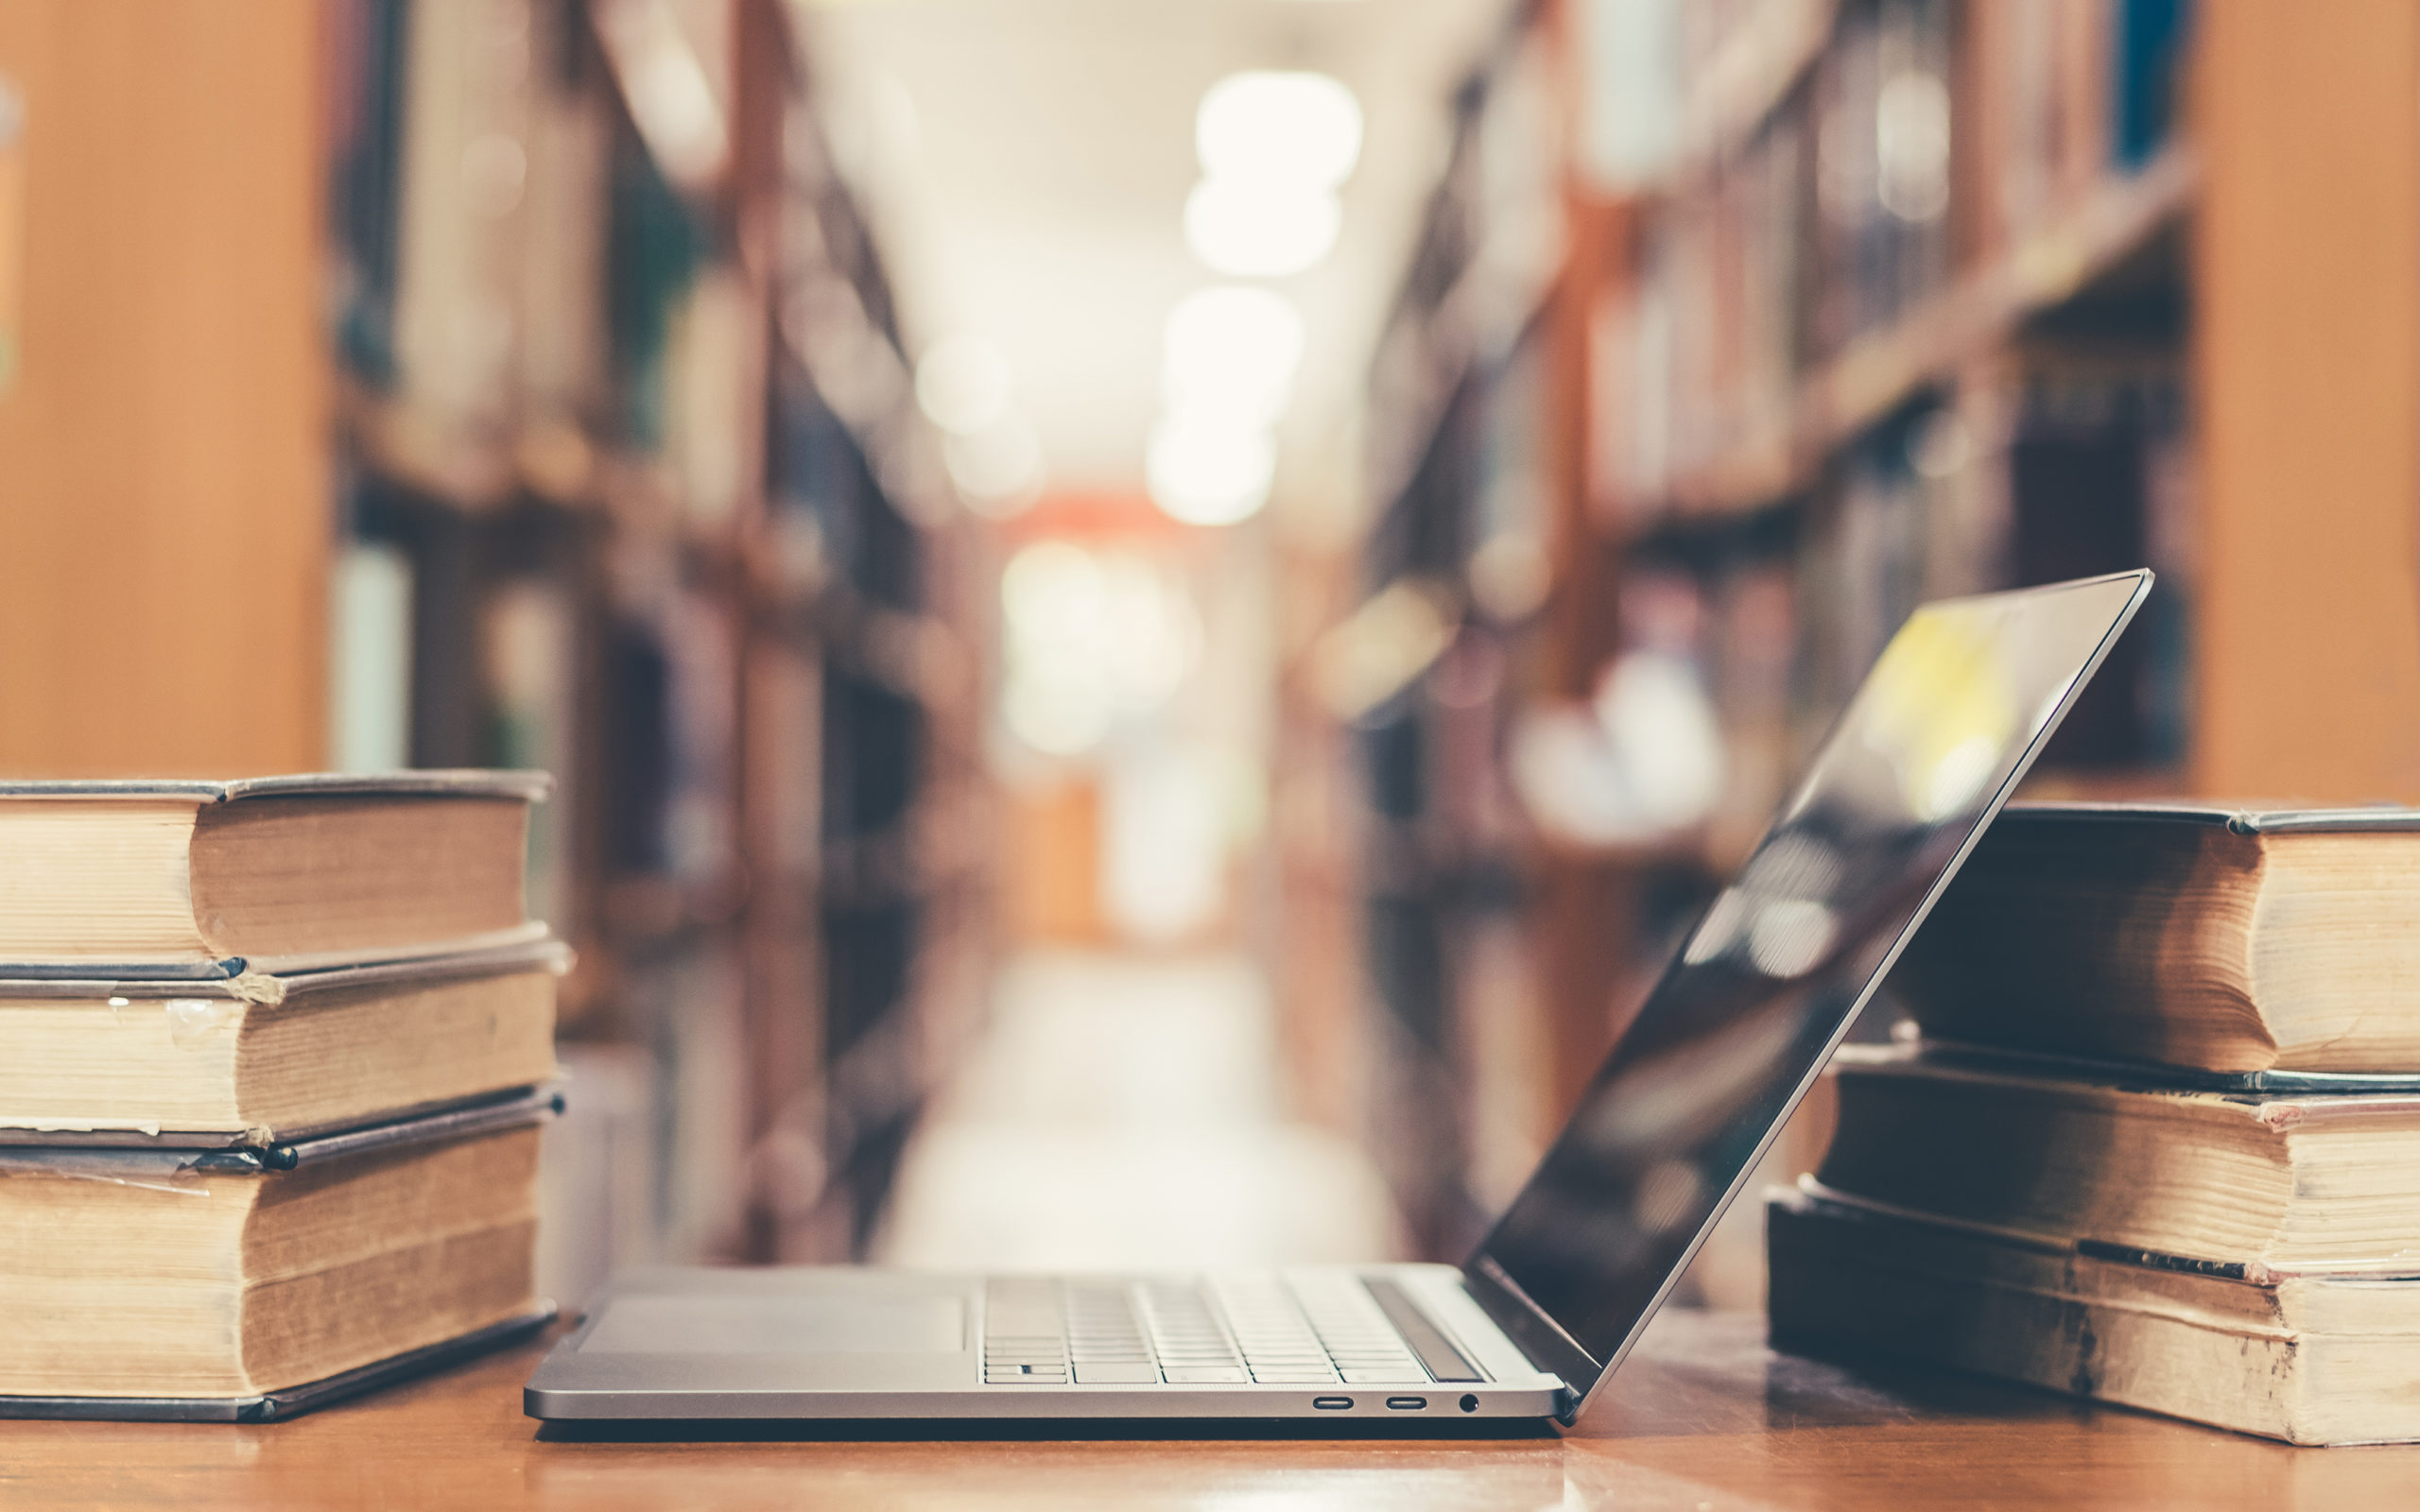 Laptop in library banner image